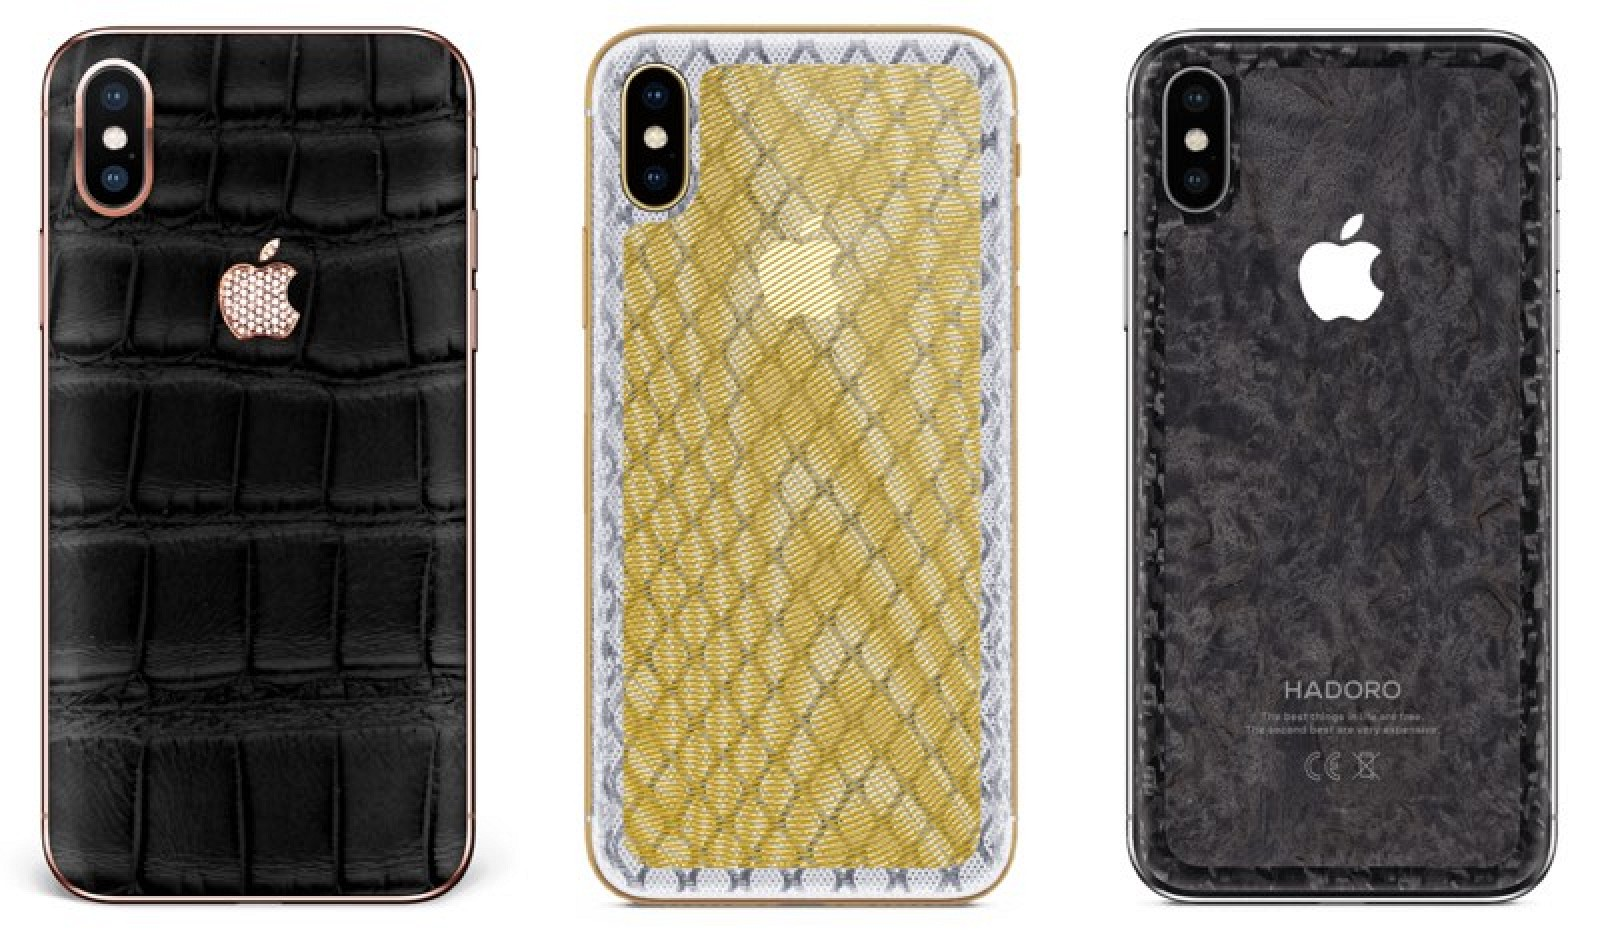 Three iPhone XS using protective cases of different patterns.